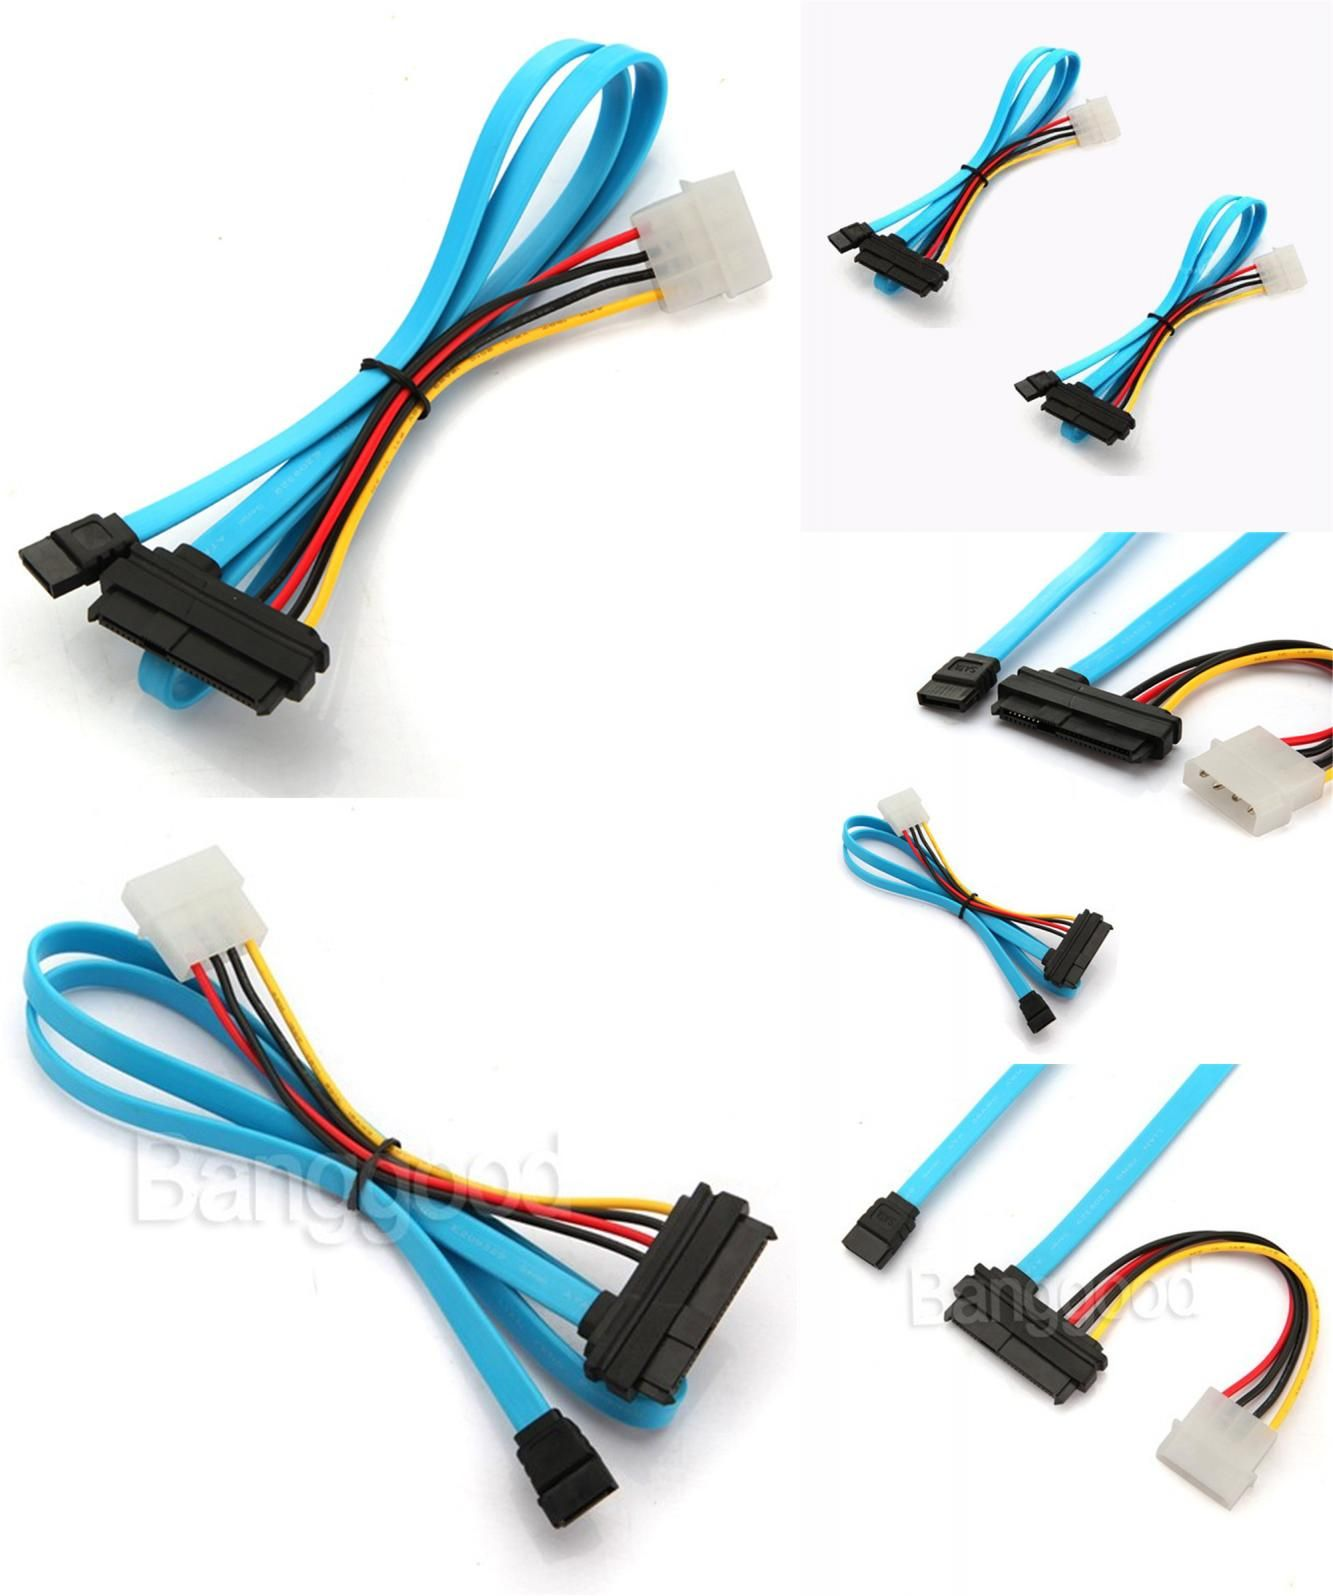 hight resolution of  visit to buy 1pcs 7 pin sata serial female ata to sas 29 pin connector cable 4 pin male power cable adapter converter for hard disk drive advertisement